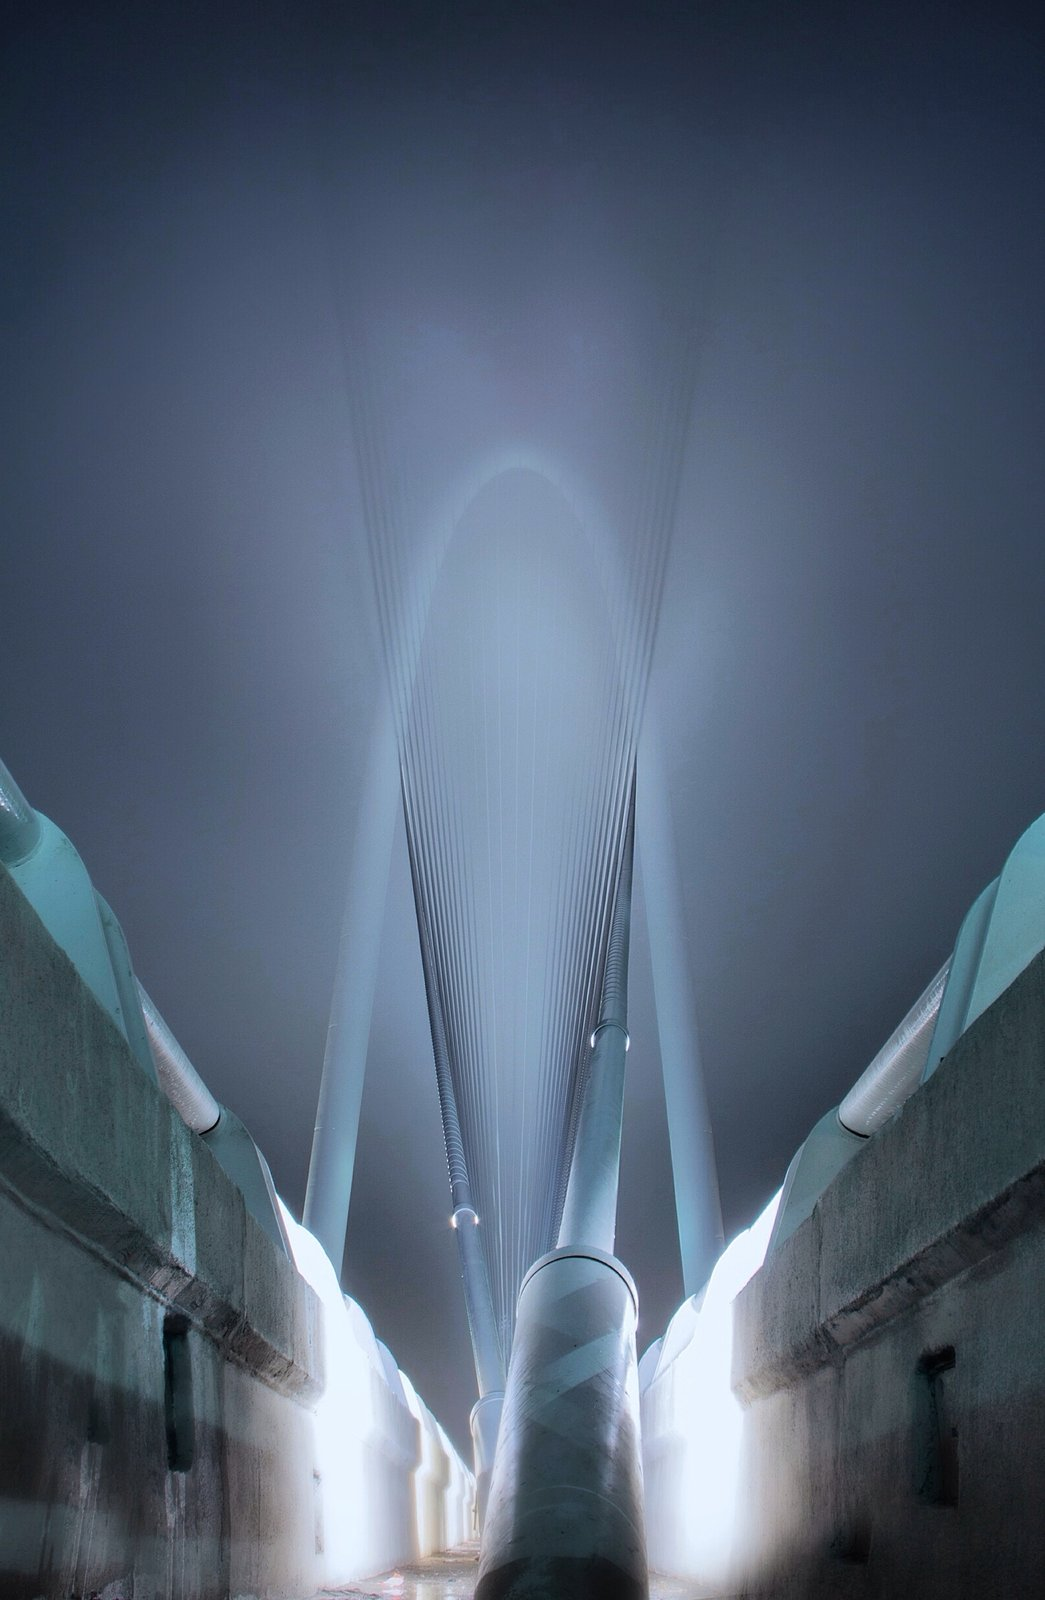 Photo 1 of 1 in Photo of the Week: Dramatic Bridge in Dallas